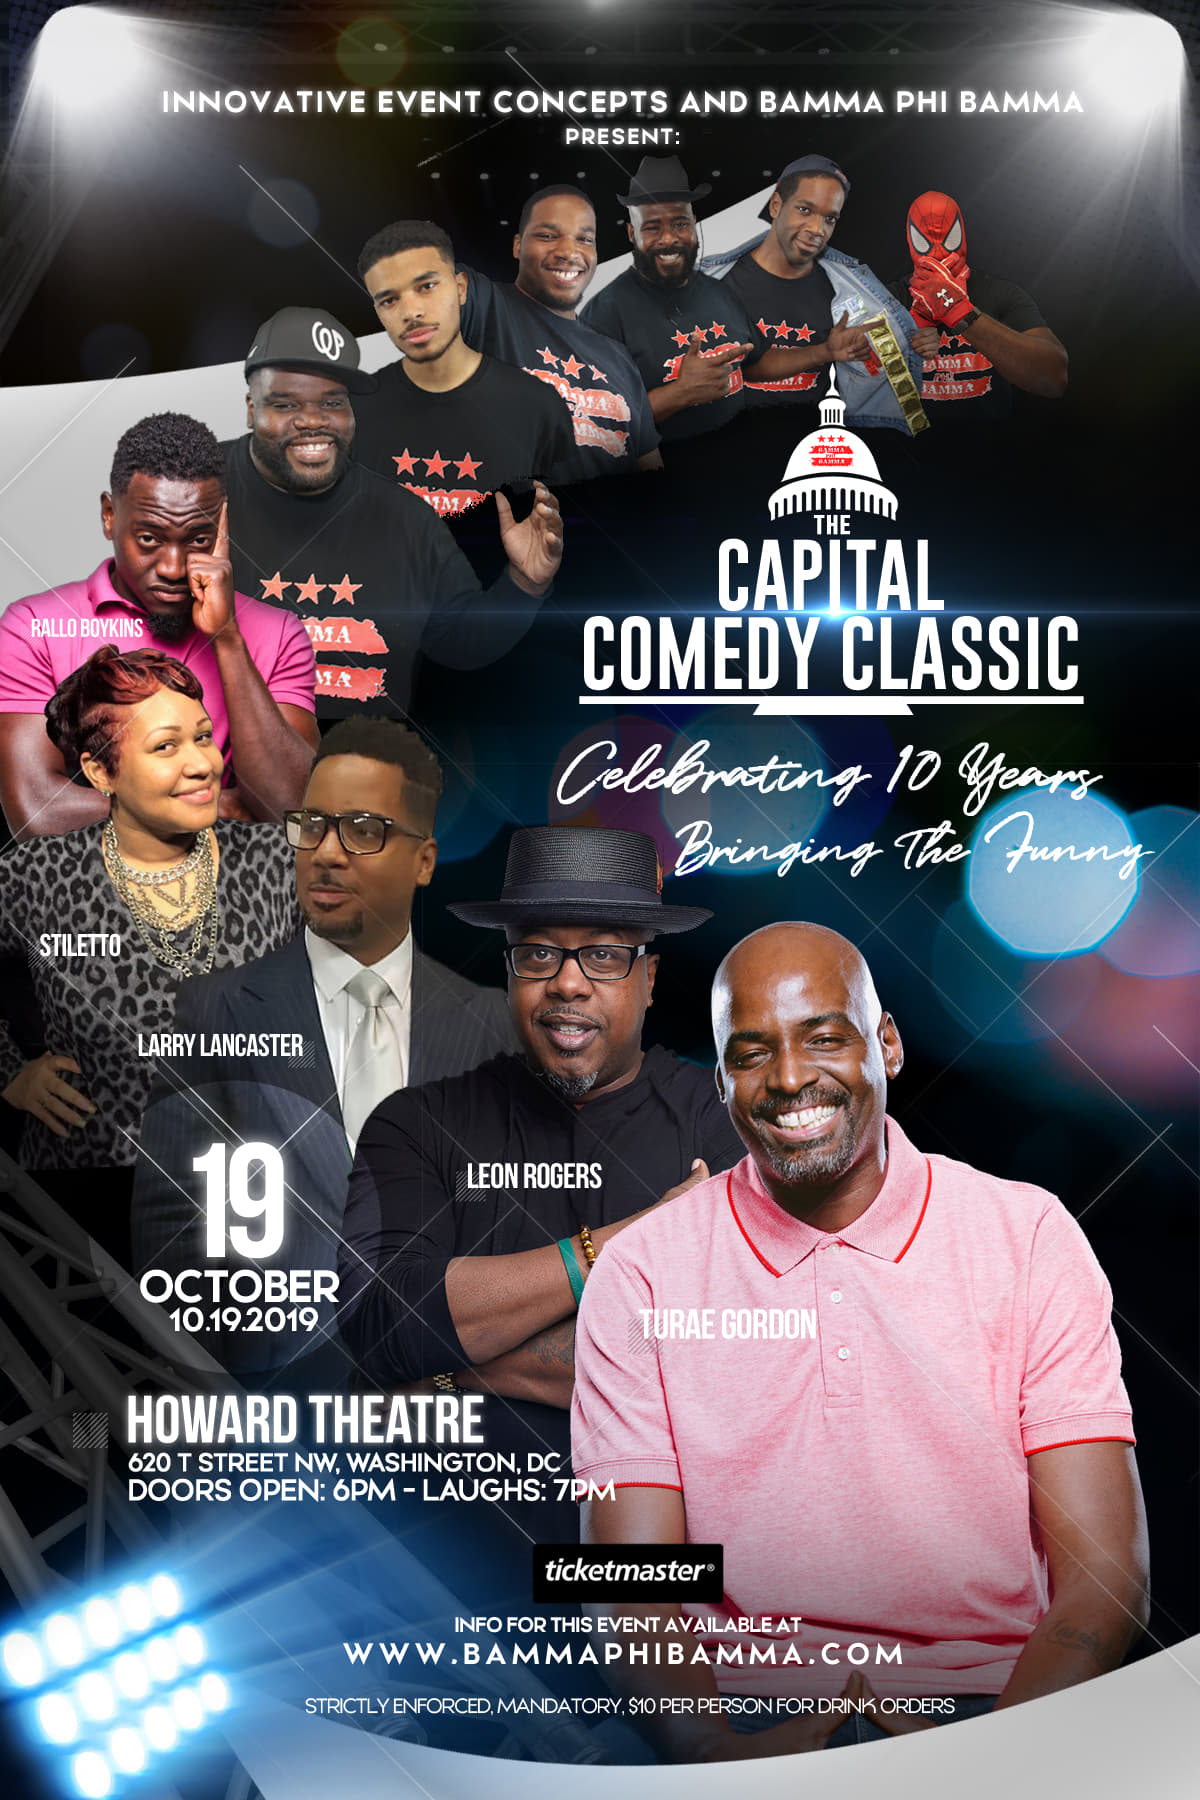 Capital Comedy Classic Saturday, Oct 19th 7:oopm-9:3opm Howard Theatre | 620 T Street NW | Washington, DC 20001   Tickets